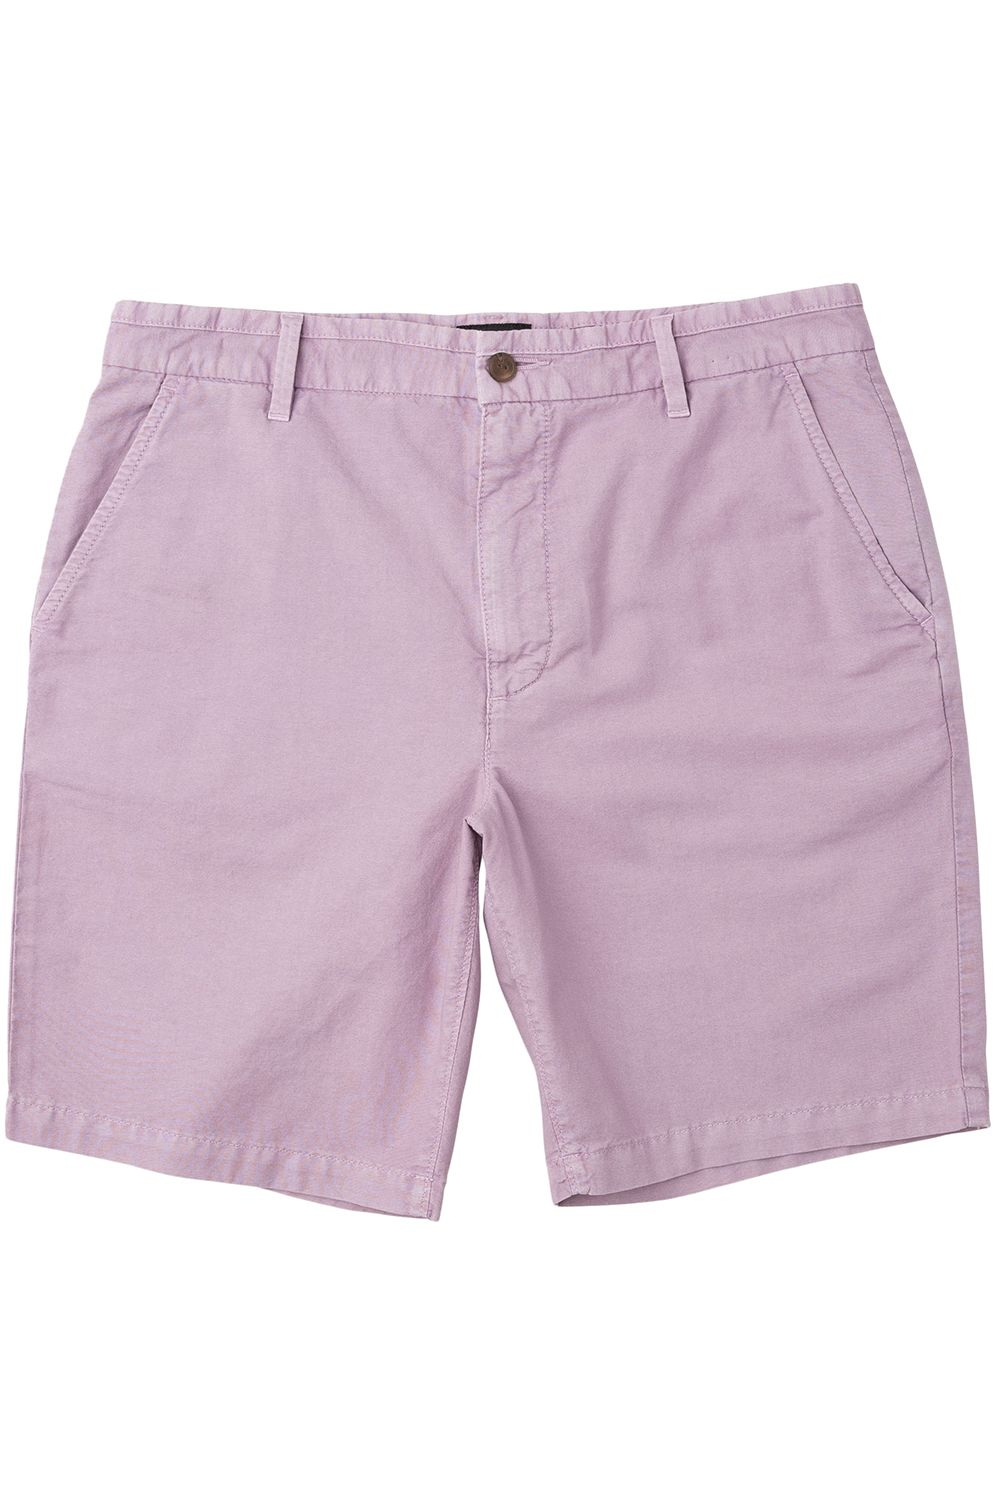 Walkshorts RVCA BUTTER BALL Lavender